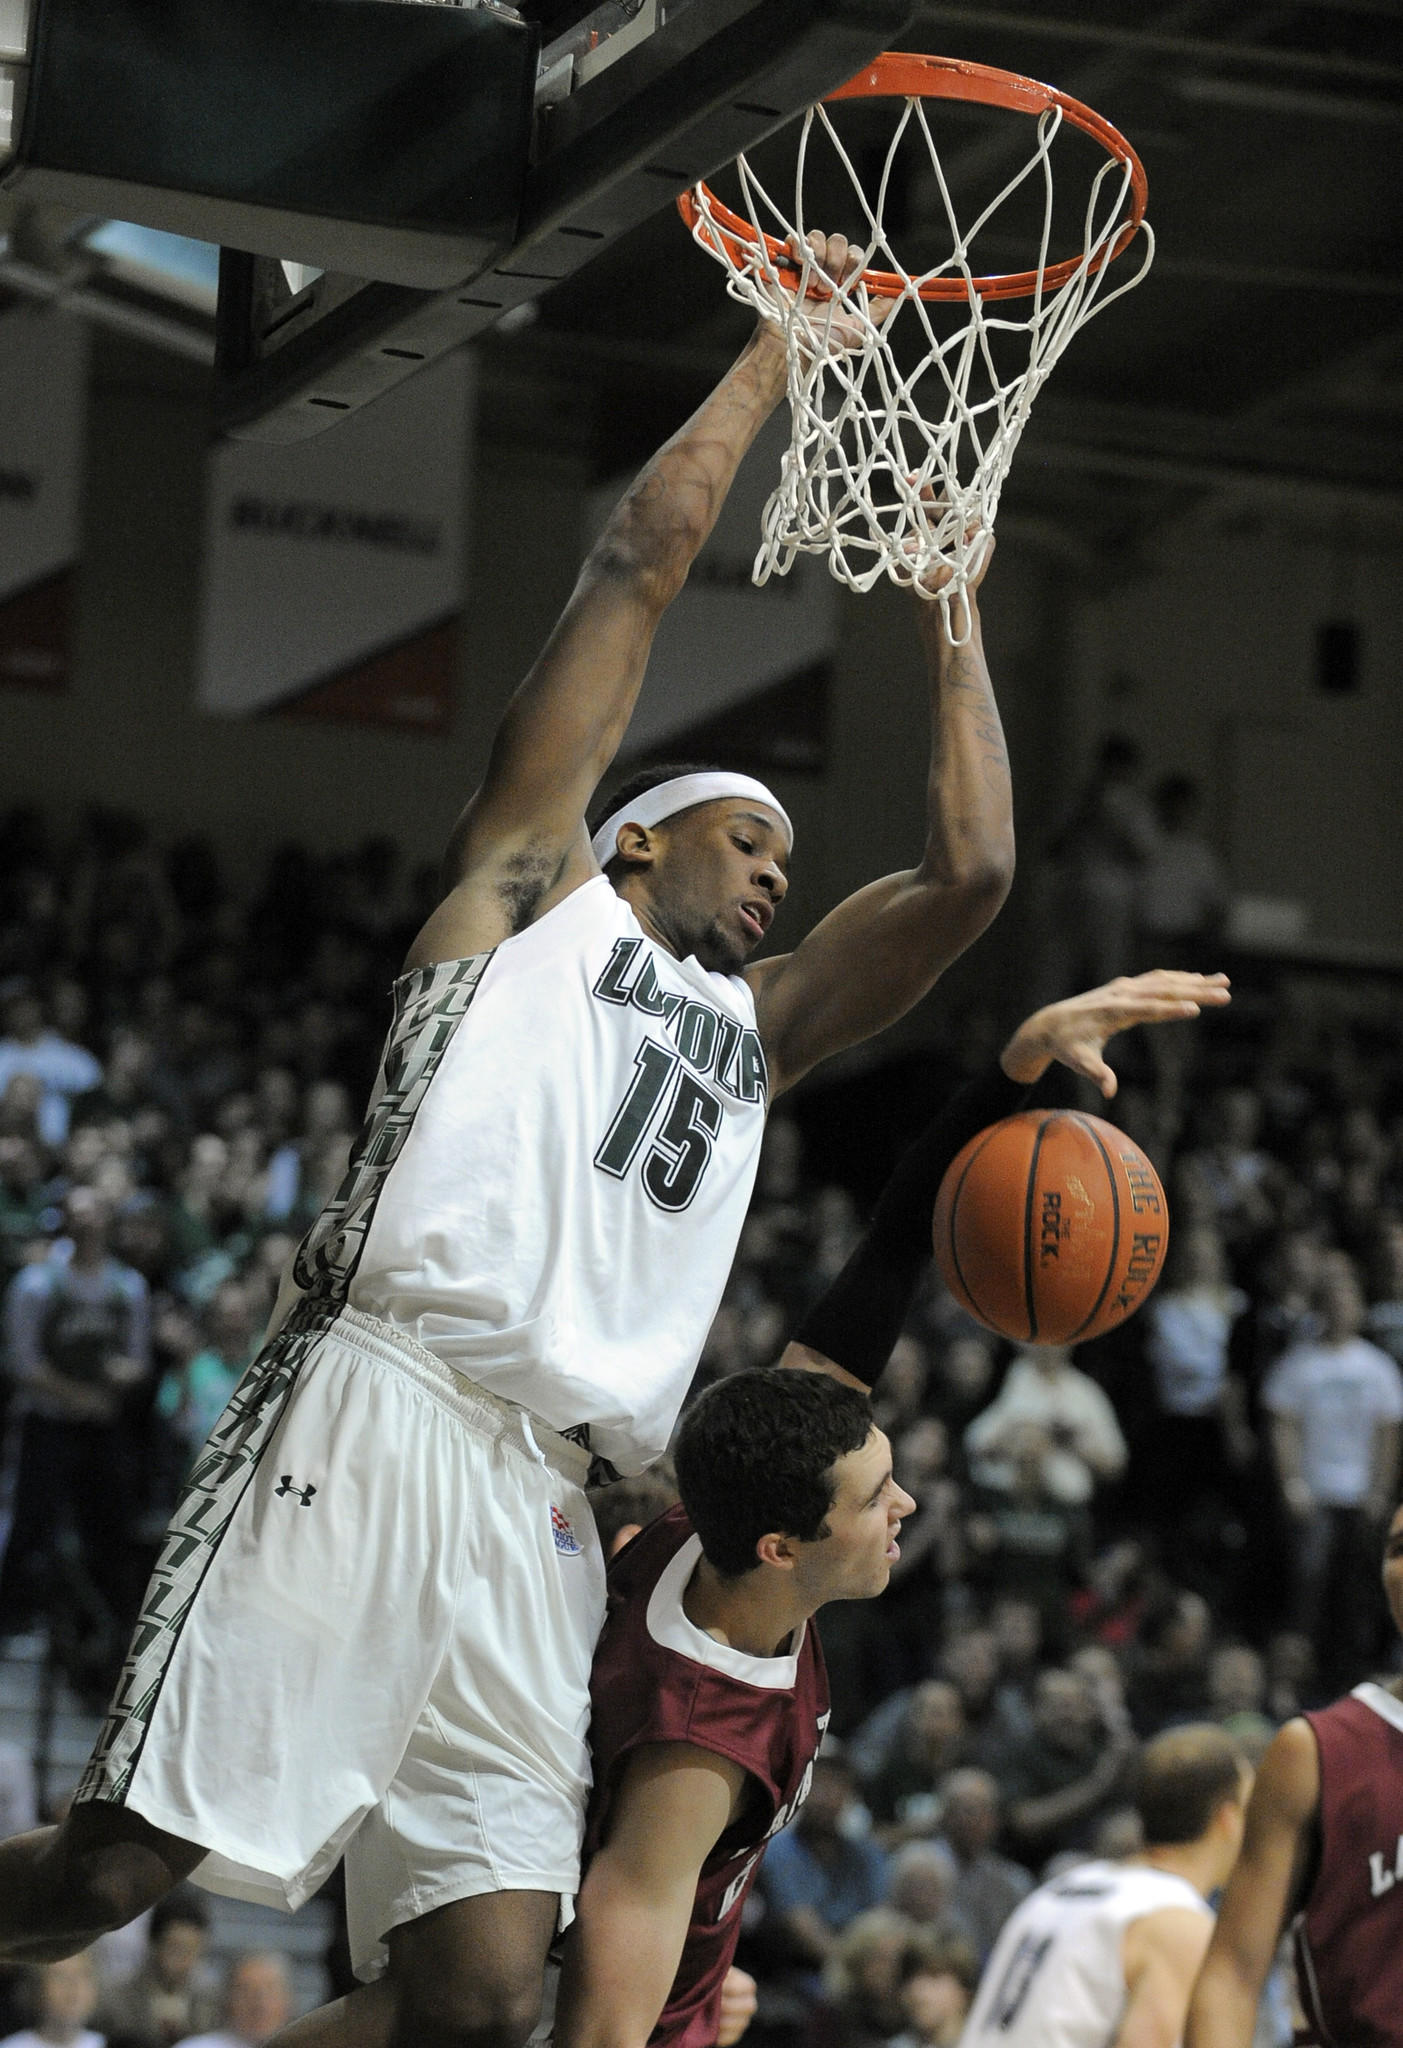 Loyola Maryland's Jordan Latham dunks over Lafayette's Michael Hoffman in the first half.